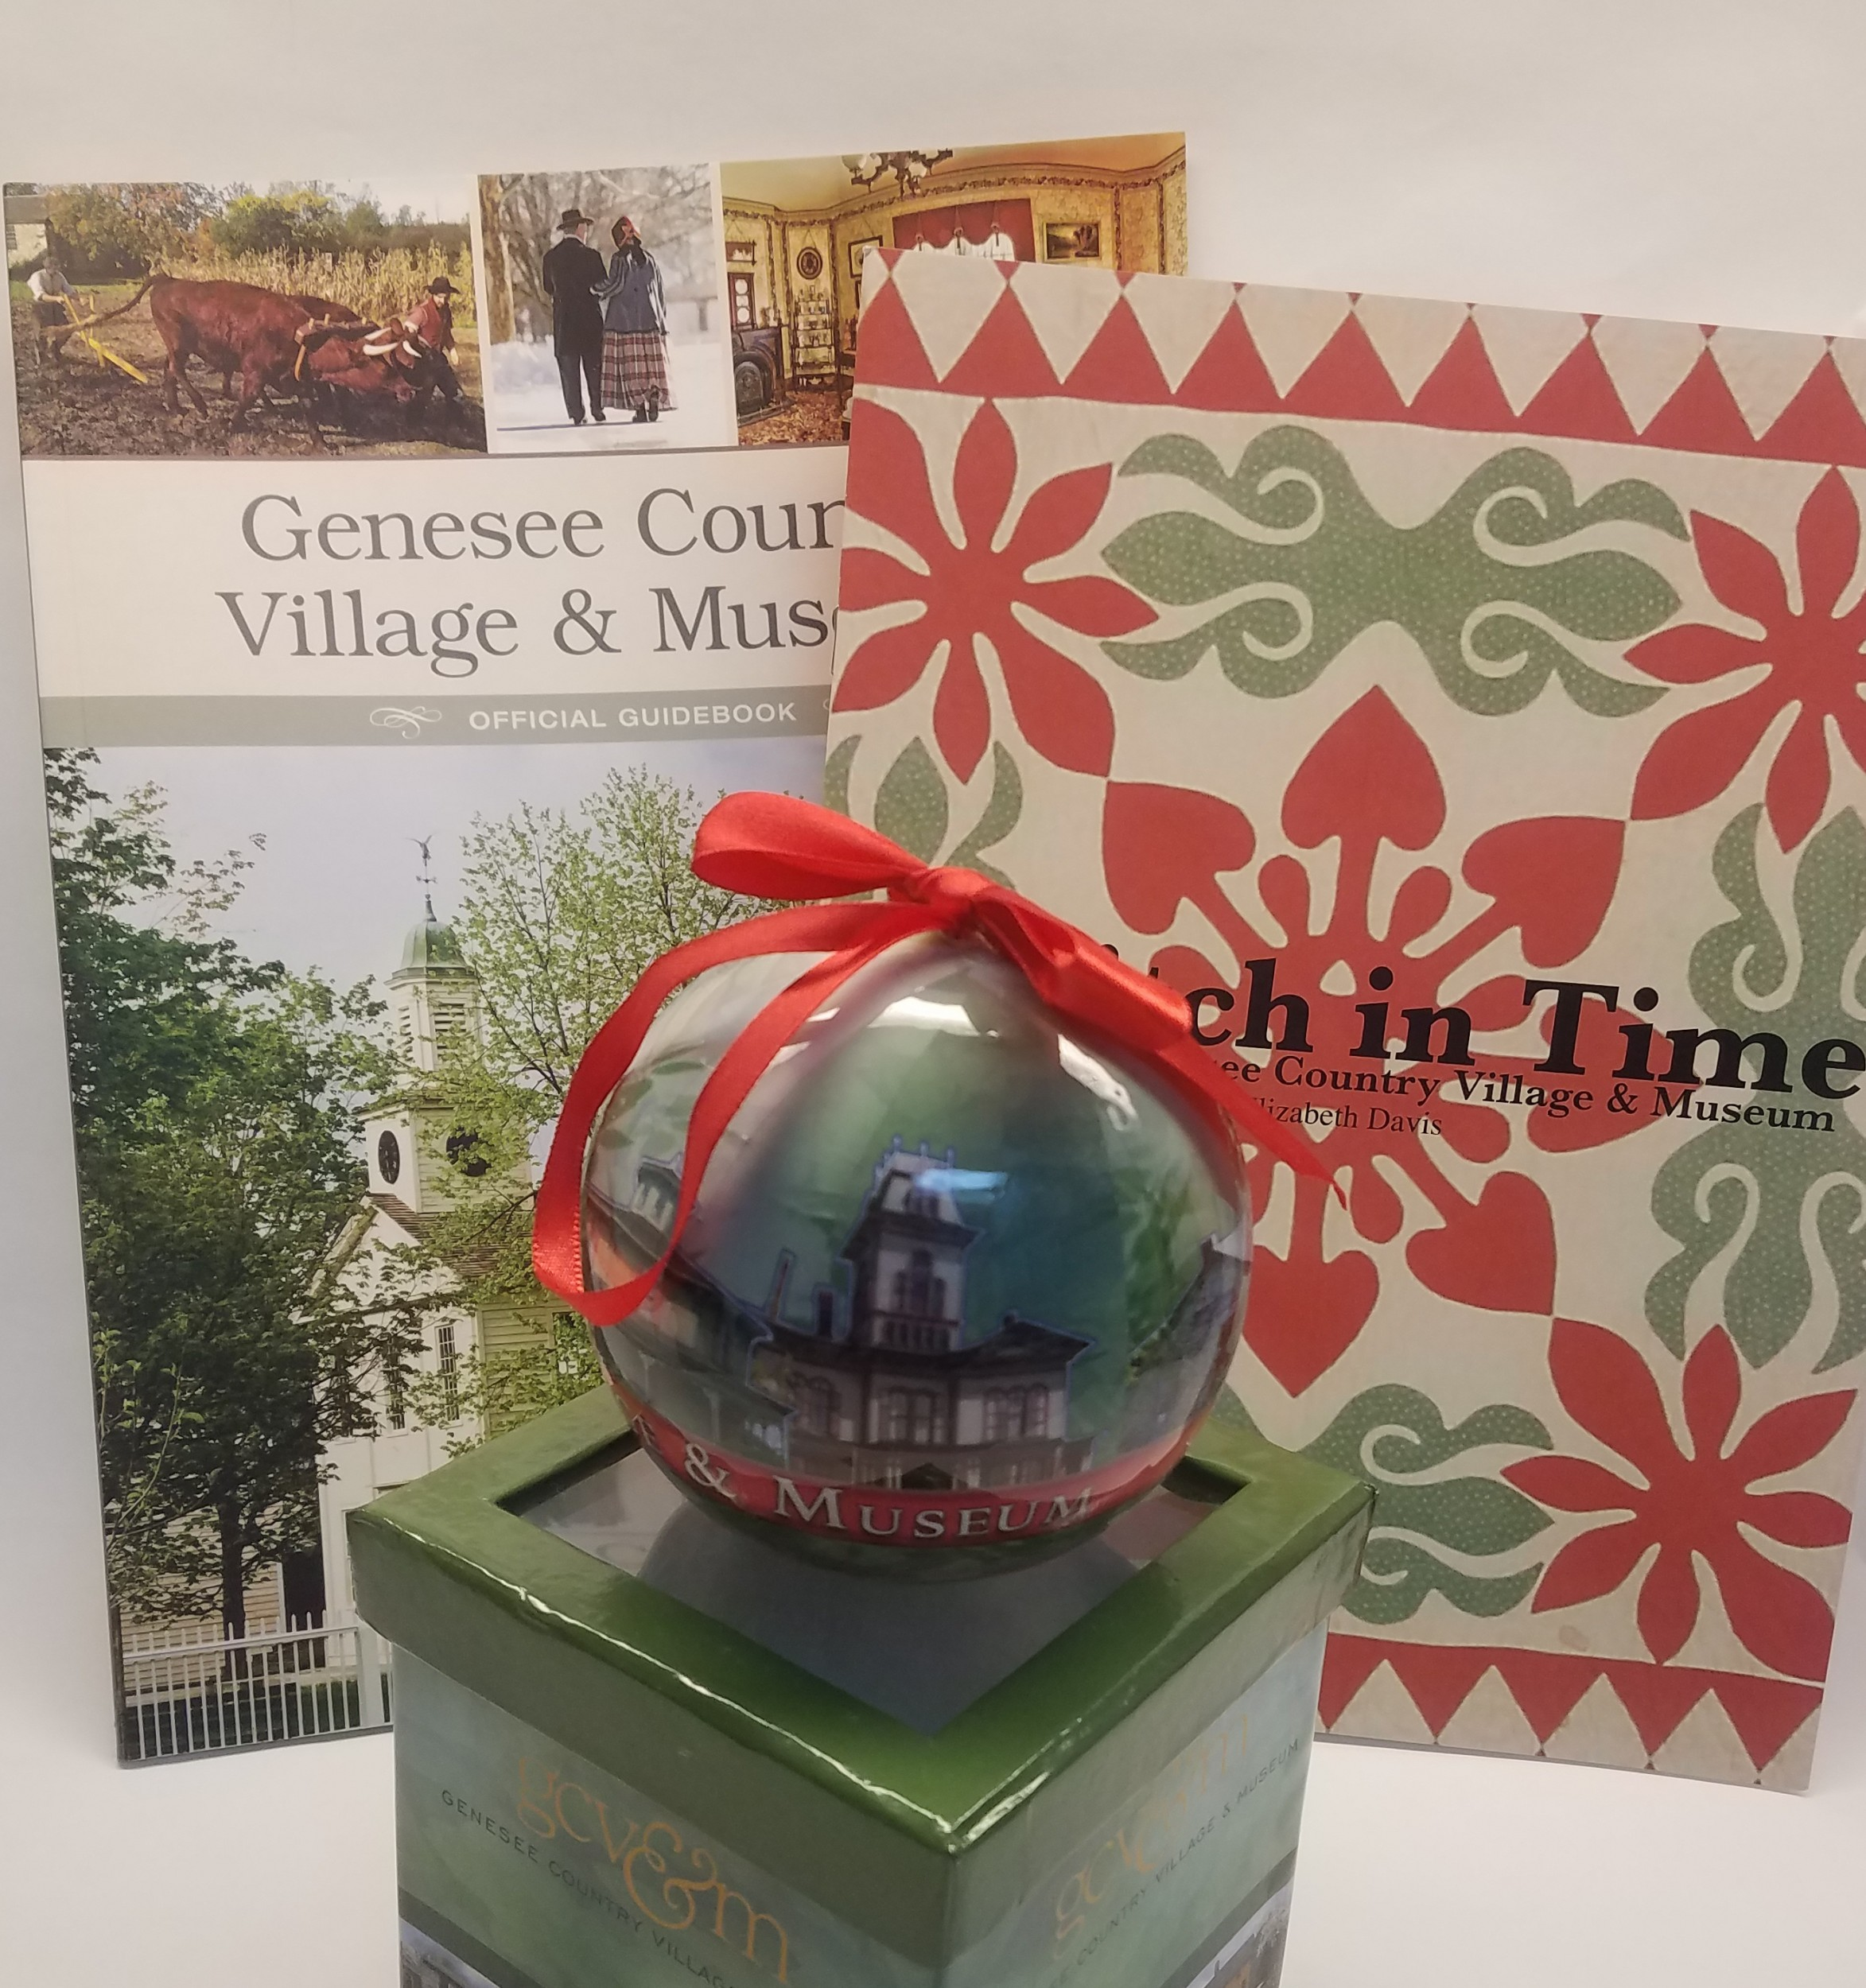 GCV&M Holiday Gift Collection